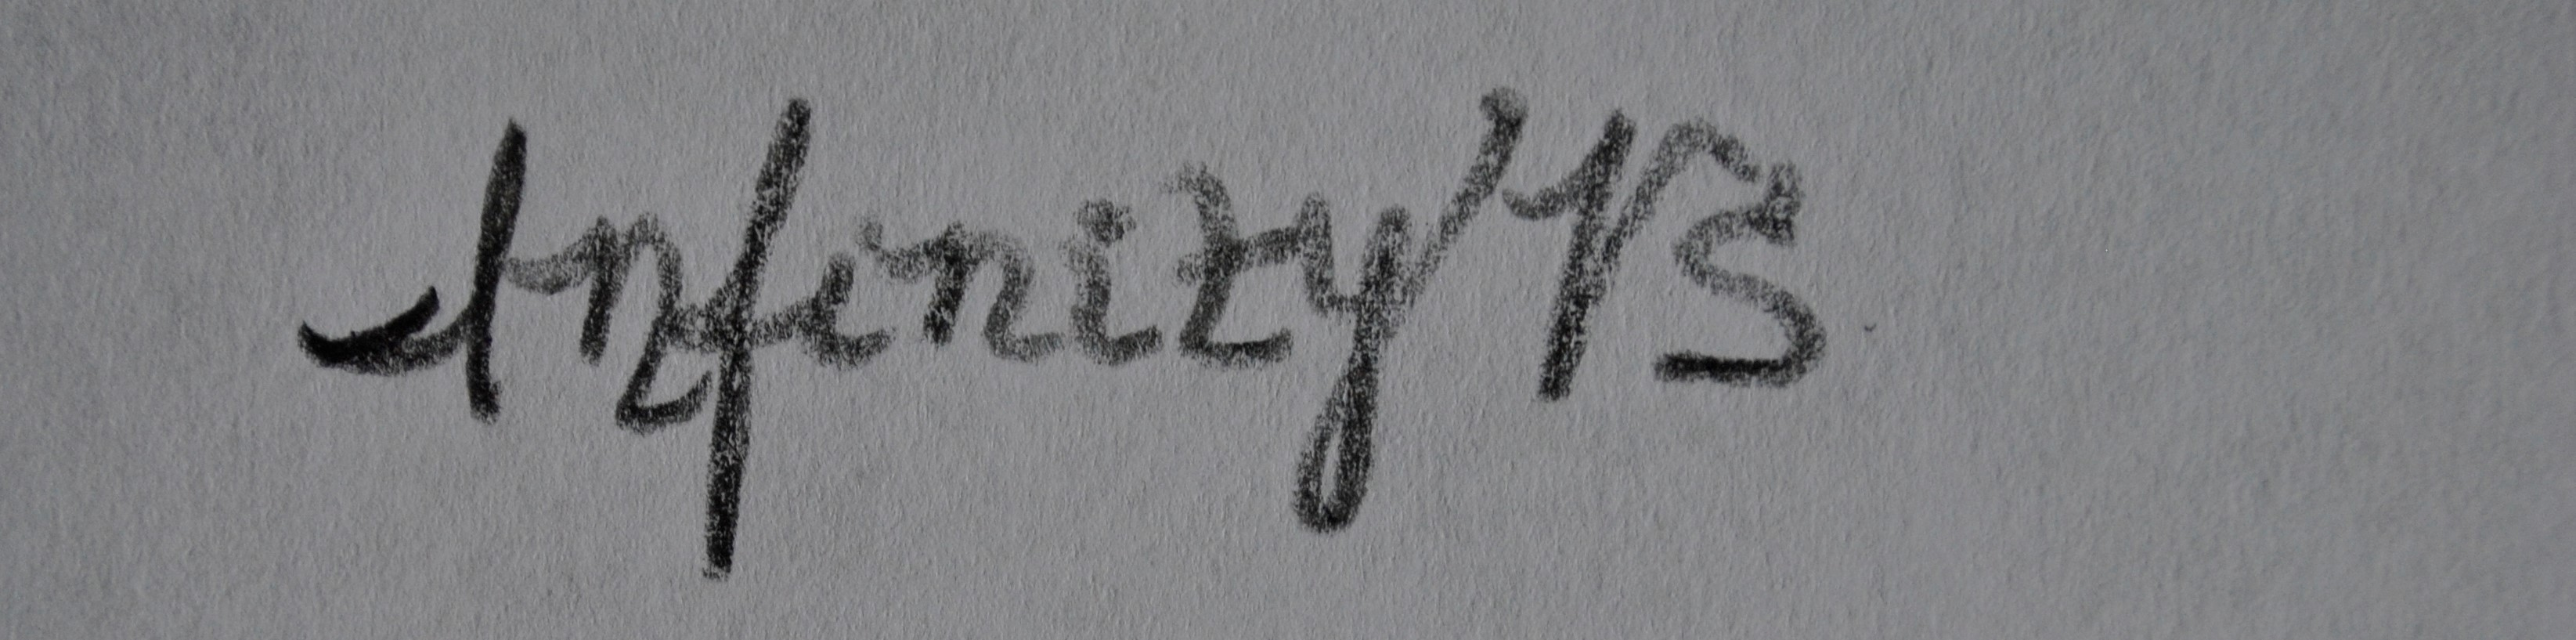 Voncille Smith's Signature